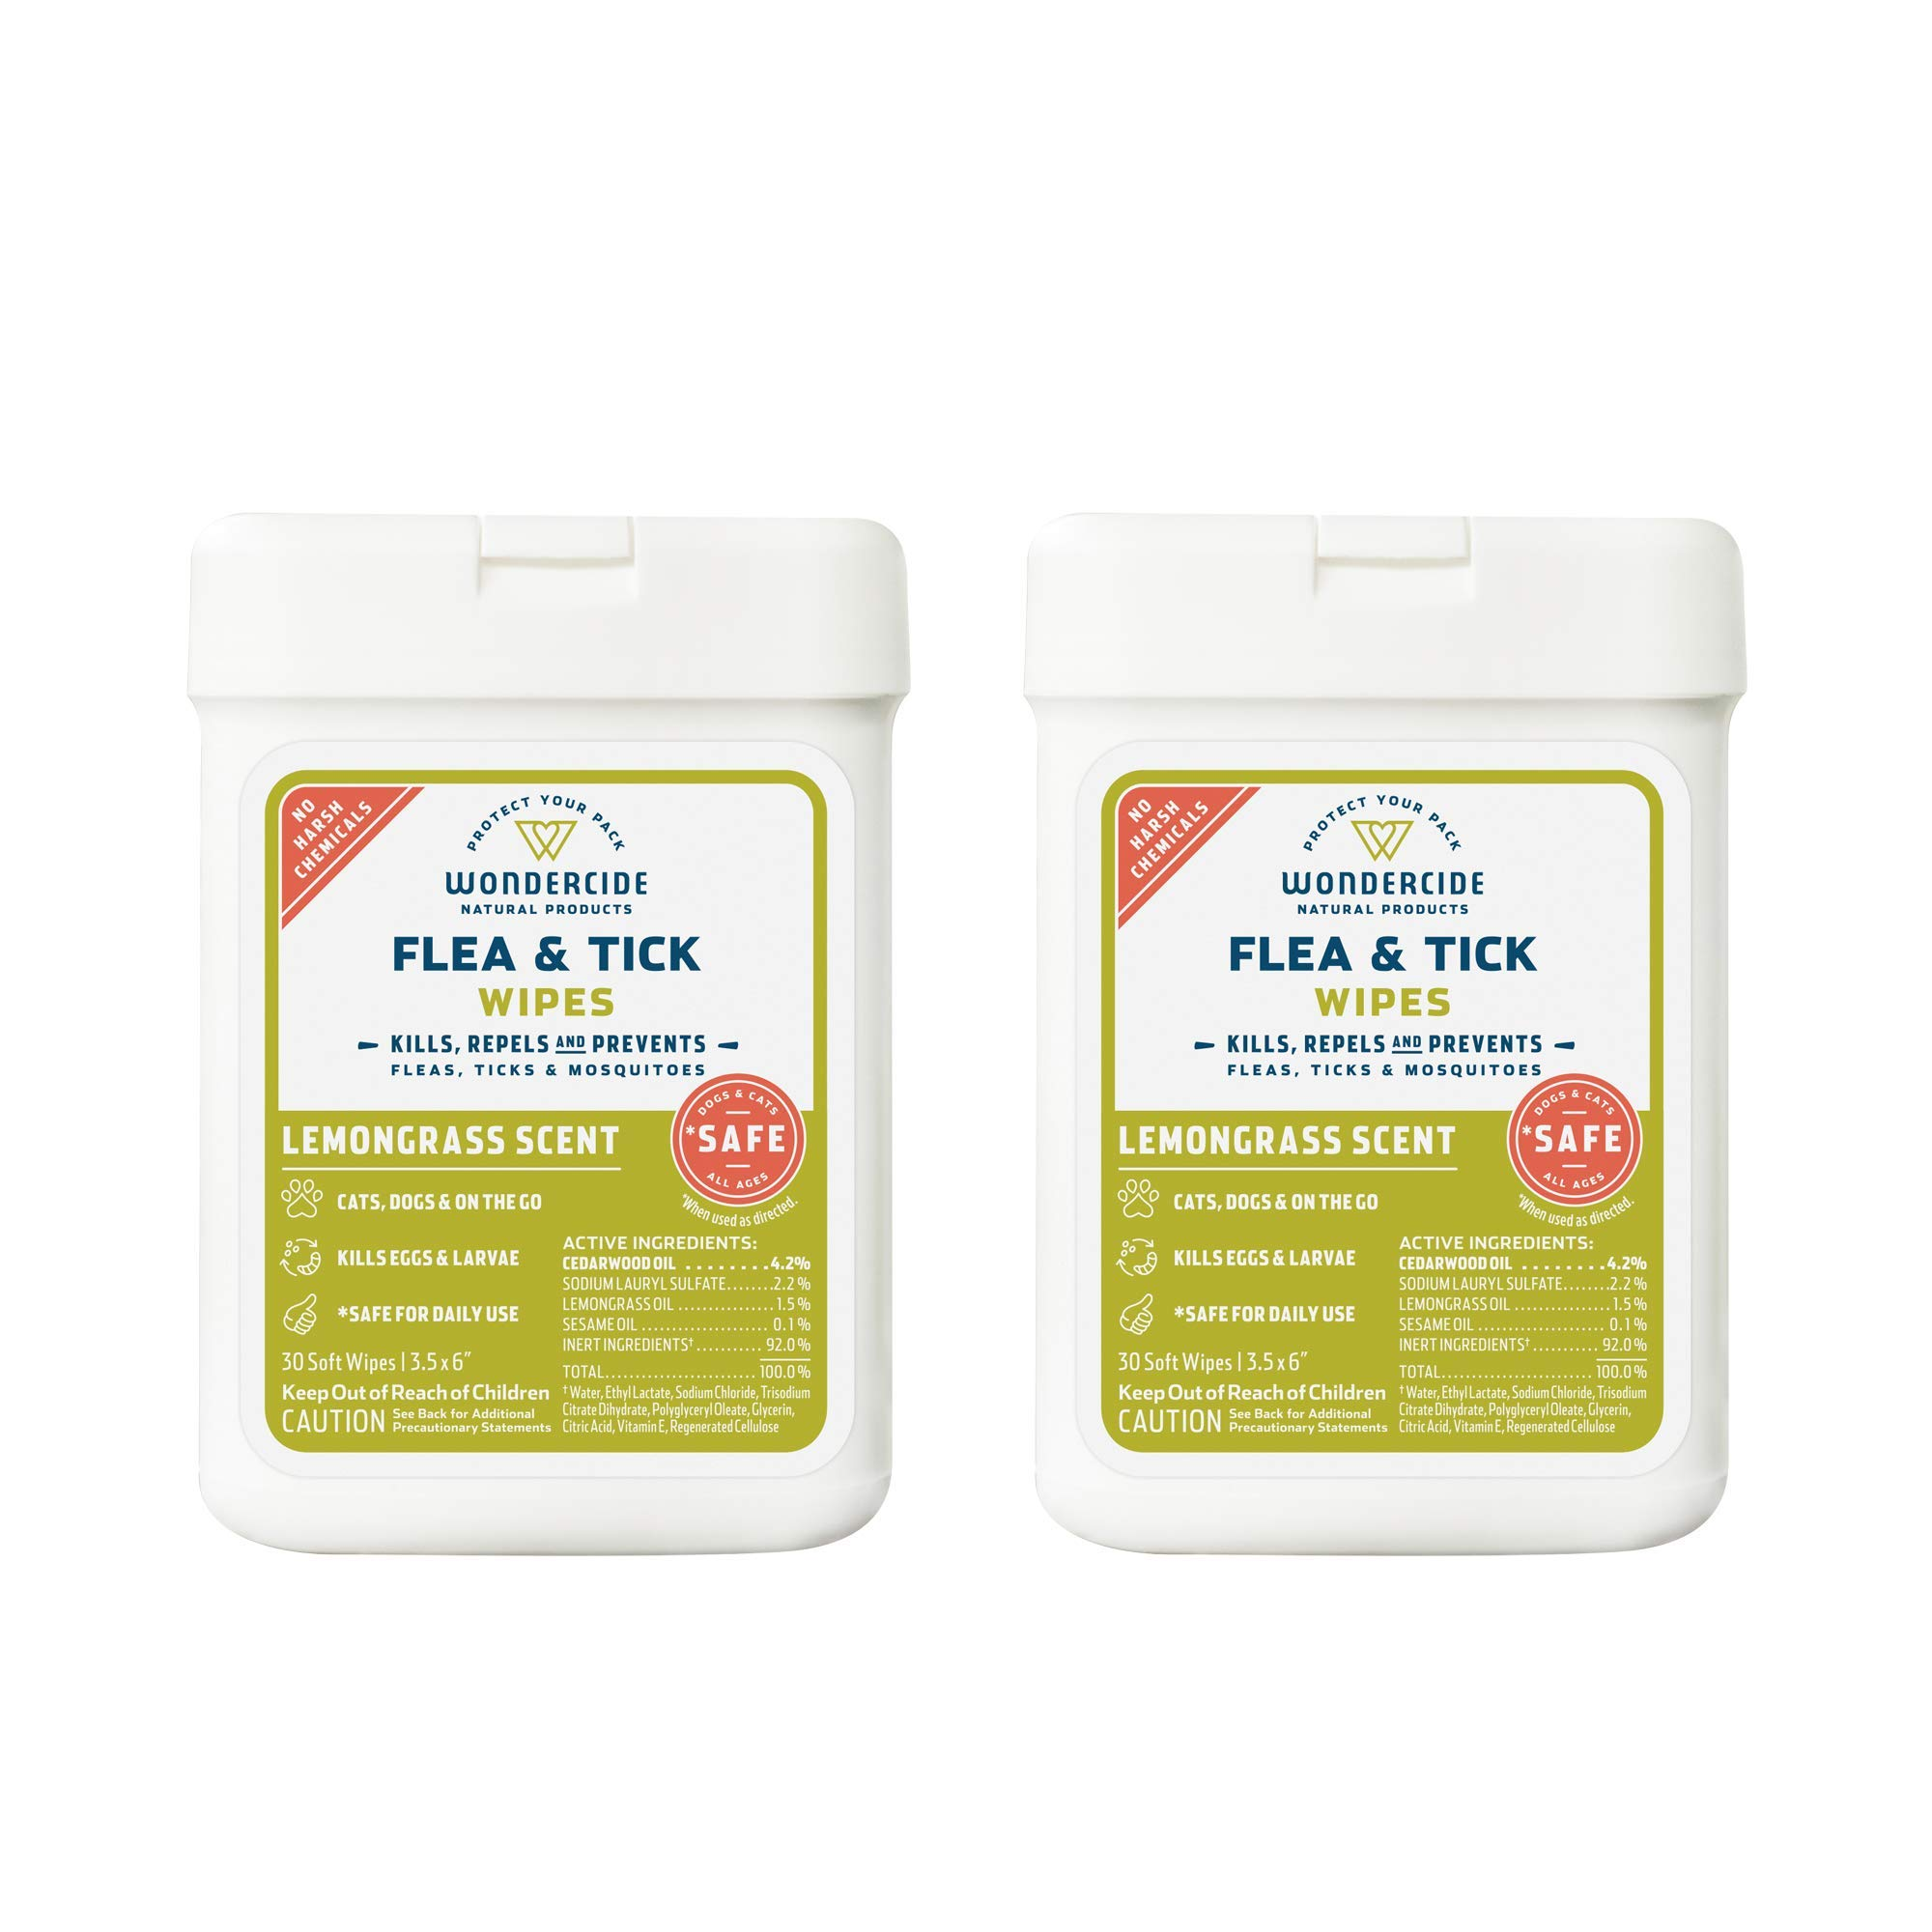 Wondercide Natural Flea Mosquito Wipes